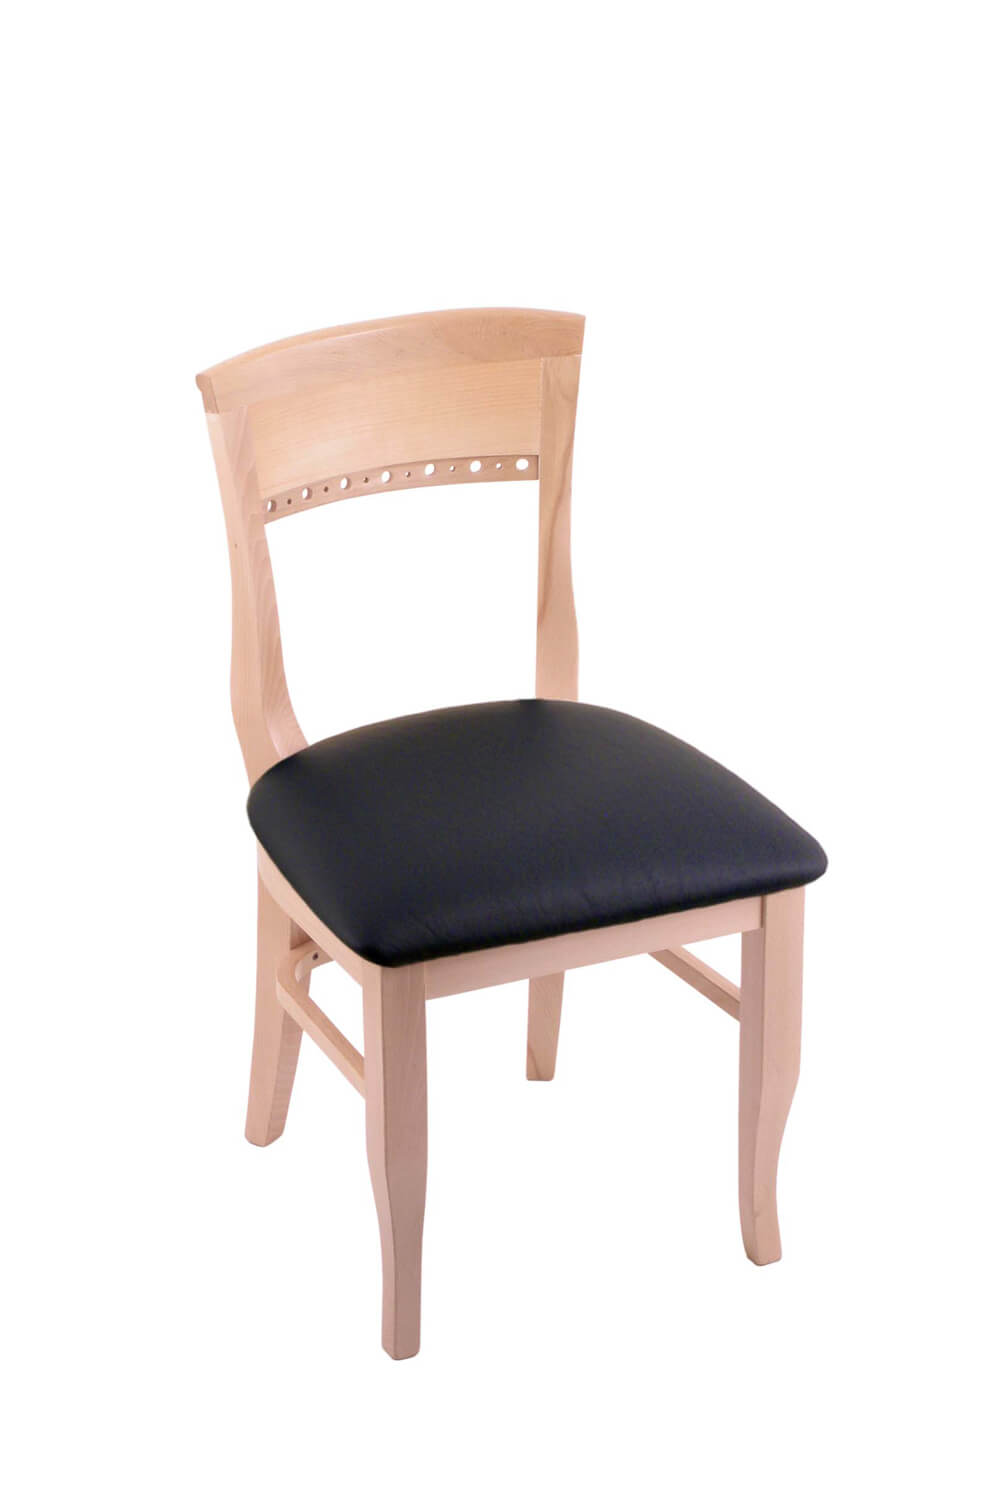 natural wood dining chairs trendy dining hollands 3160 hampton series wooden dining chair with back natural and black vinyl buy wood multiple colors